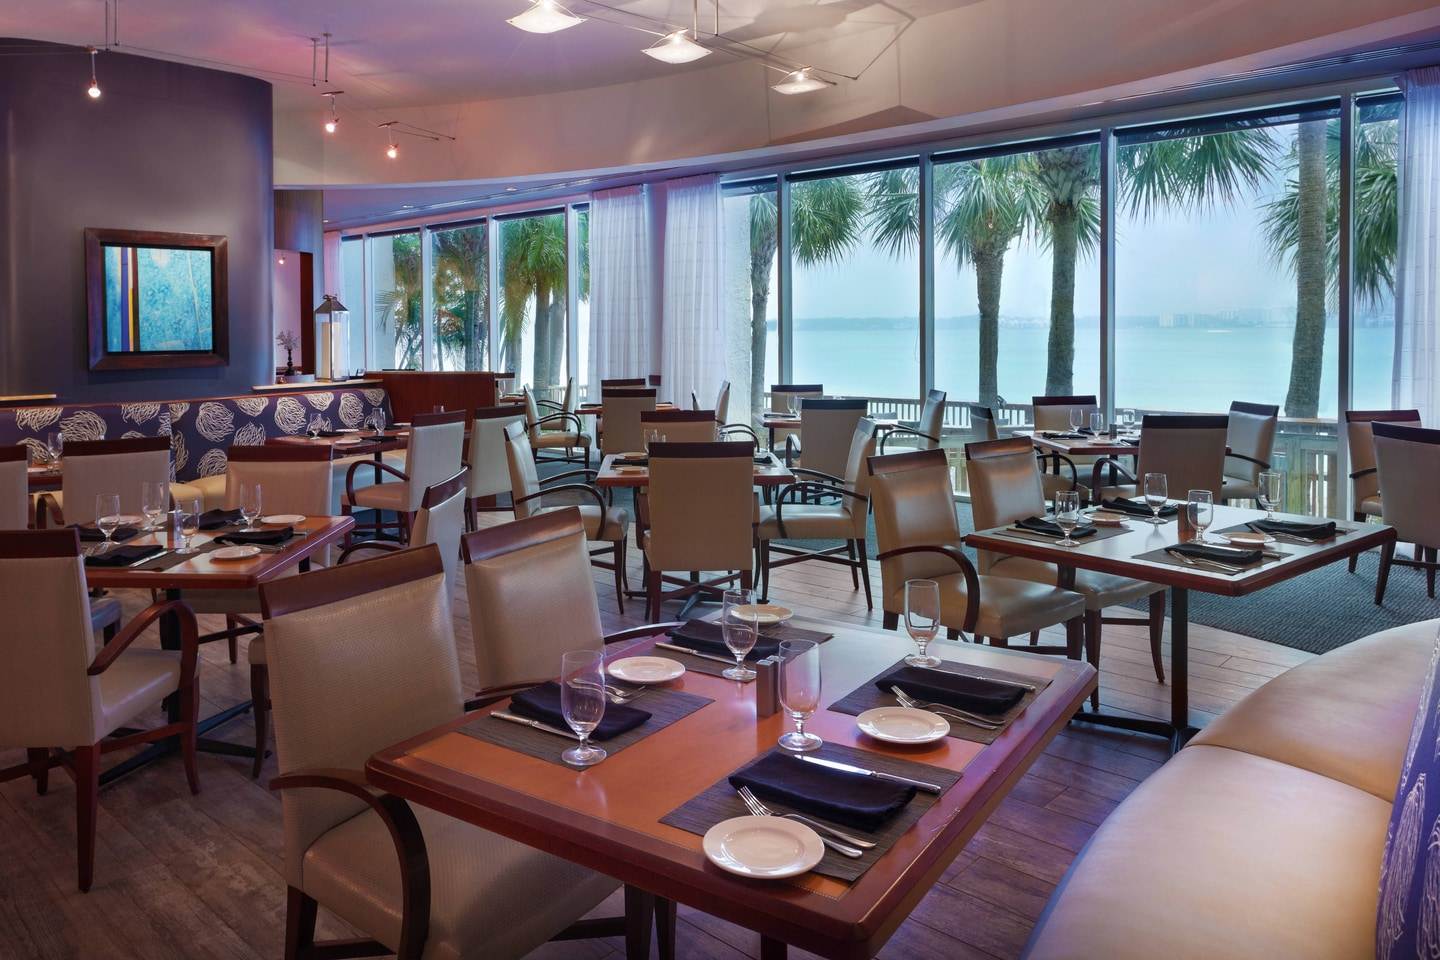 Clearwater Beach Marriott Restaurant Views